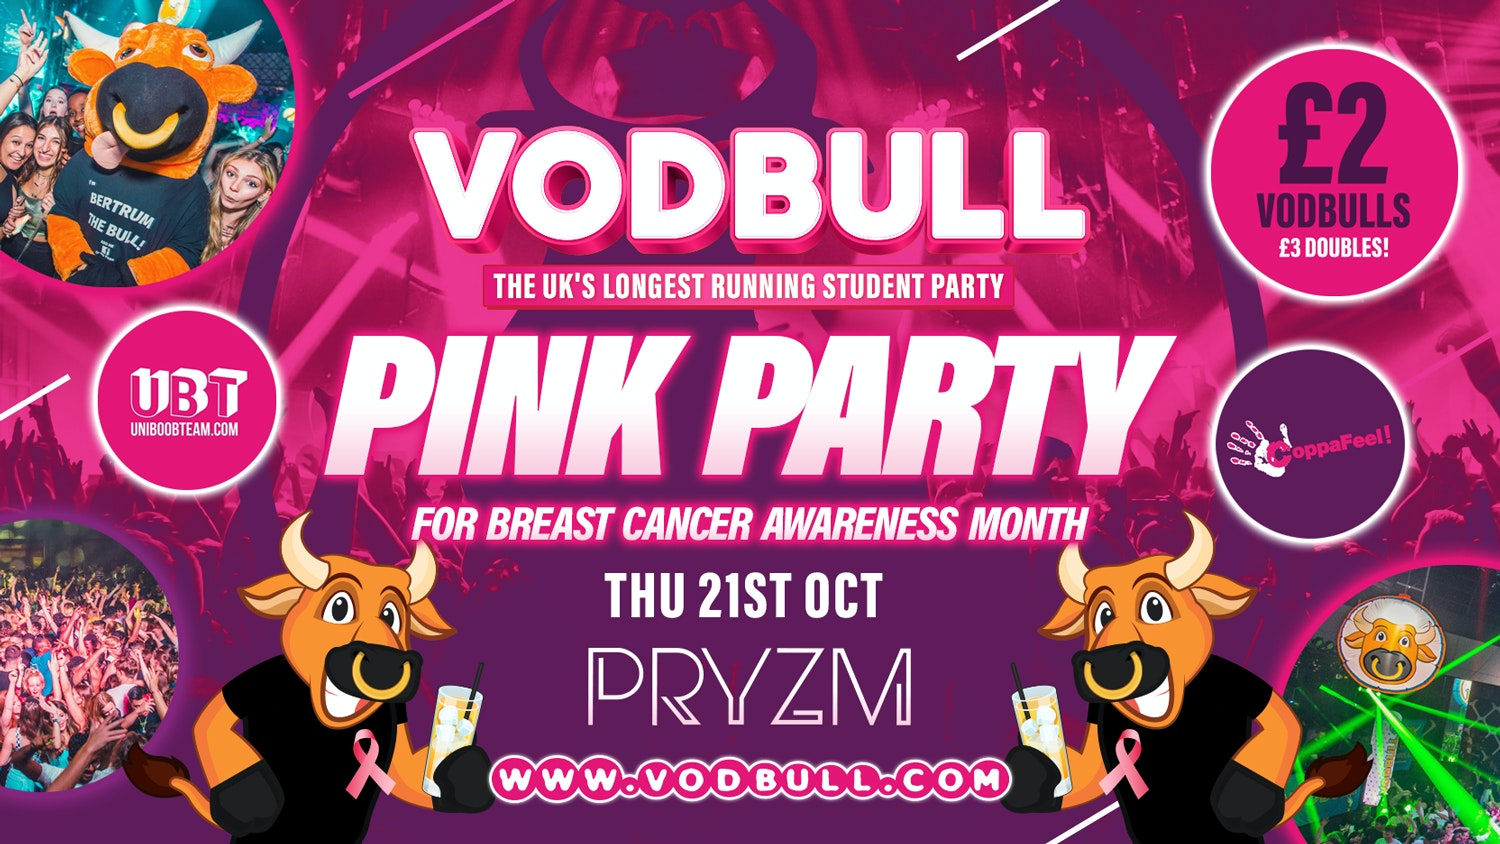 💥 VODBULL at PRYZM 👚💗THE PINK PARTY💗👚💥 21/10